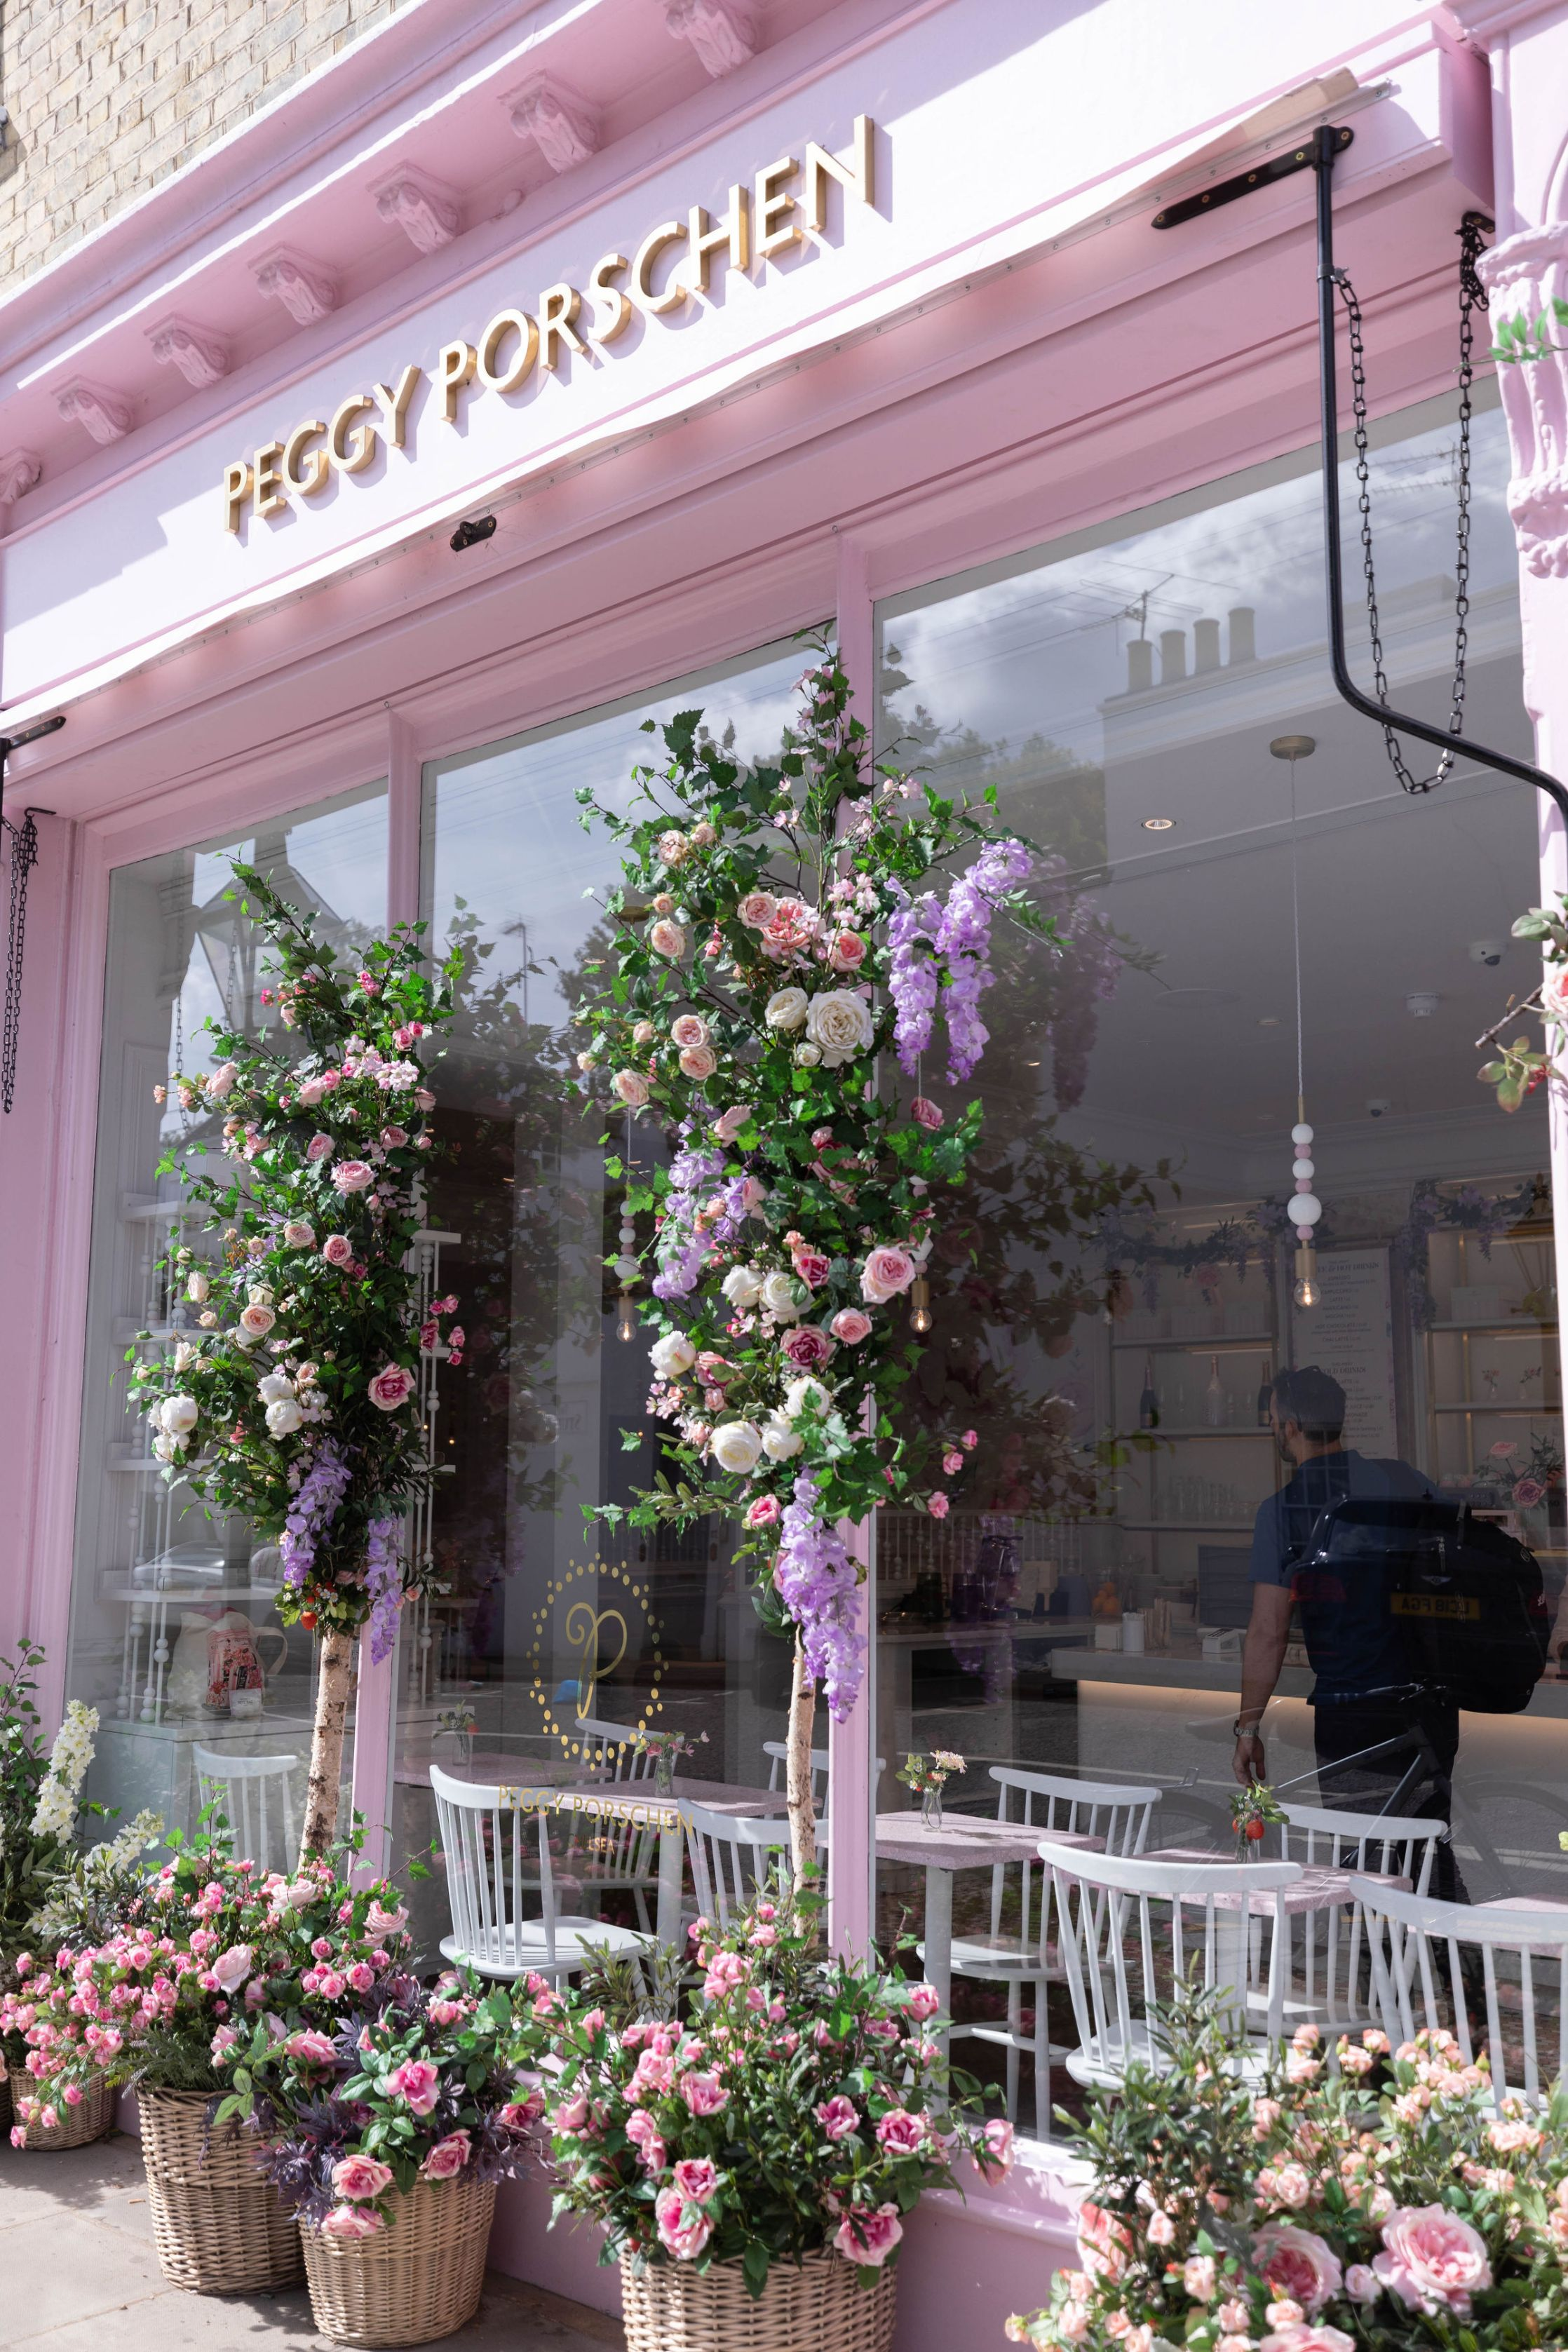 Peggy Porschen Cafe London City Guide the Official Travel Guide of London, England